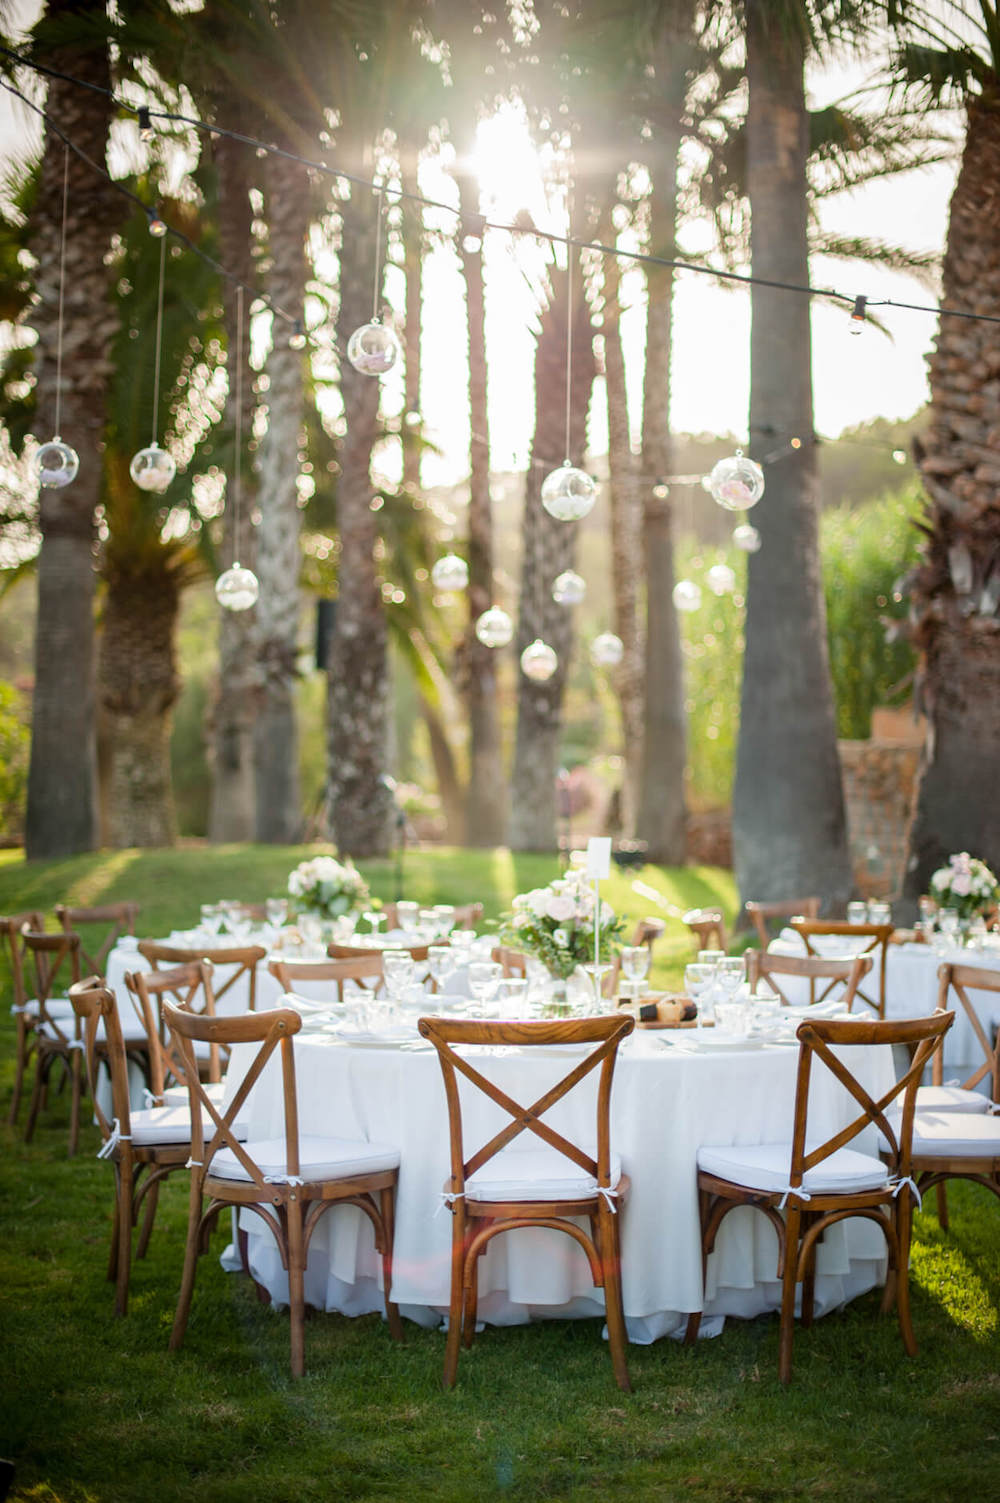 poolside wedding breakfast festoon lighting countryview hills sunset palm trees